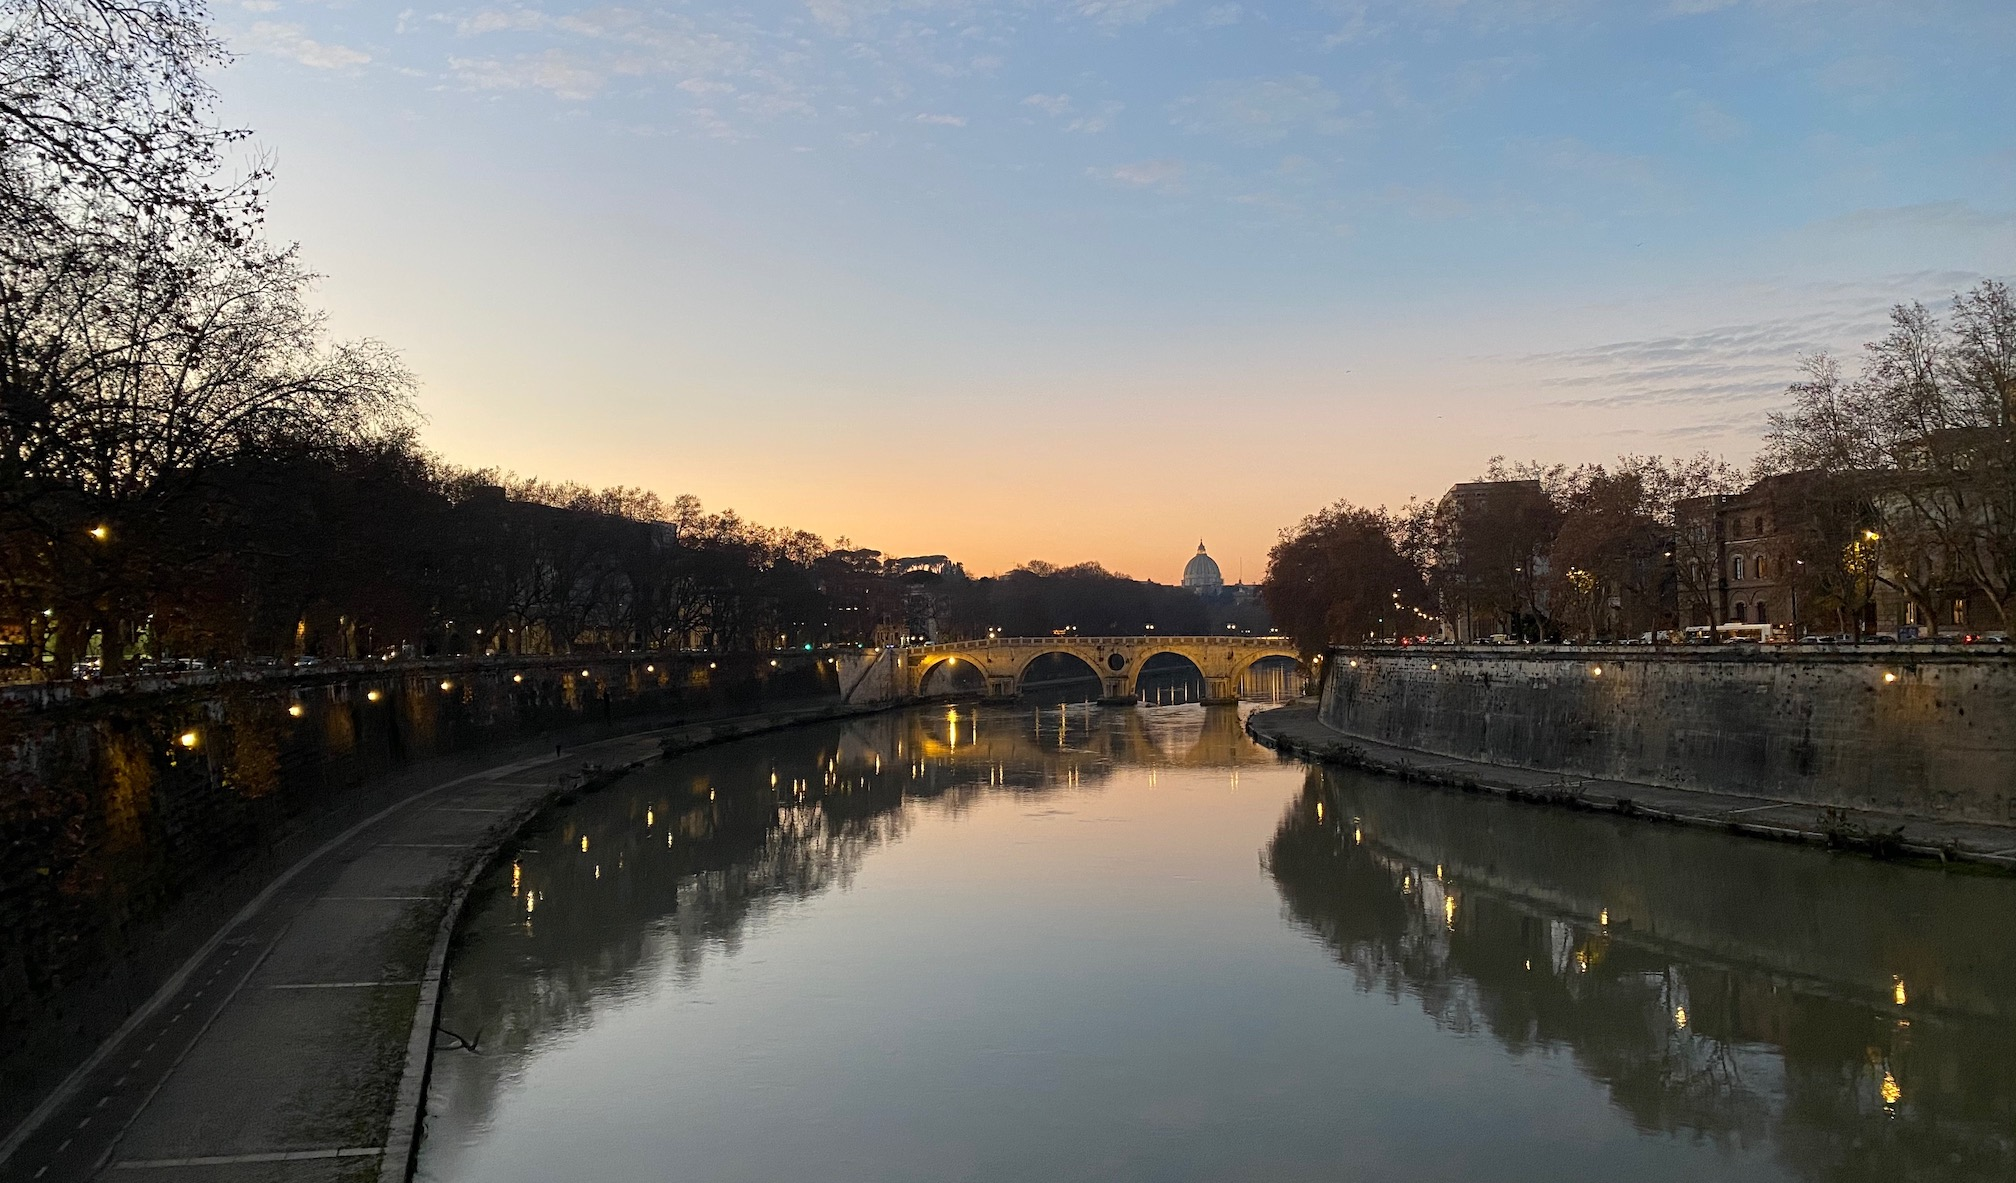 St. Peter's reflecting in the Tevere